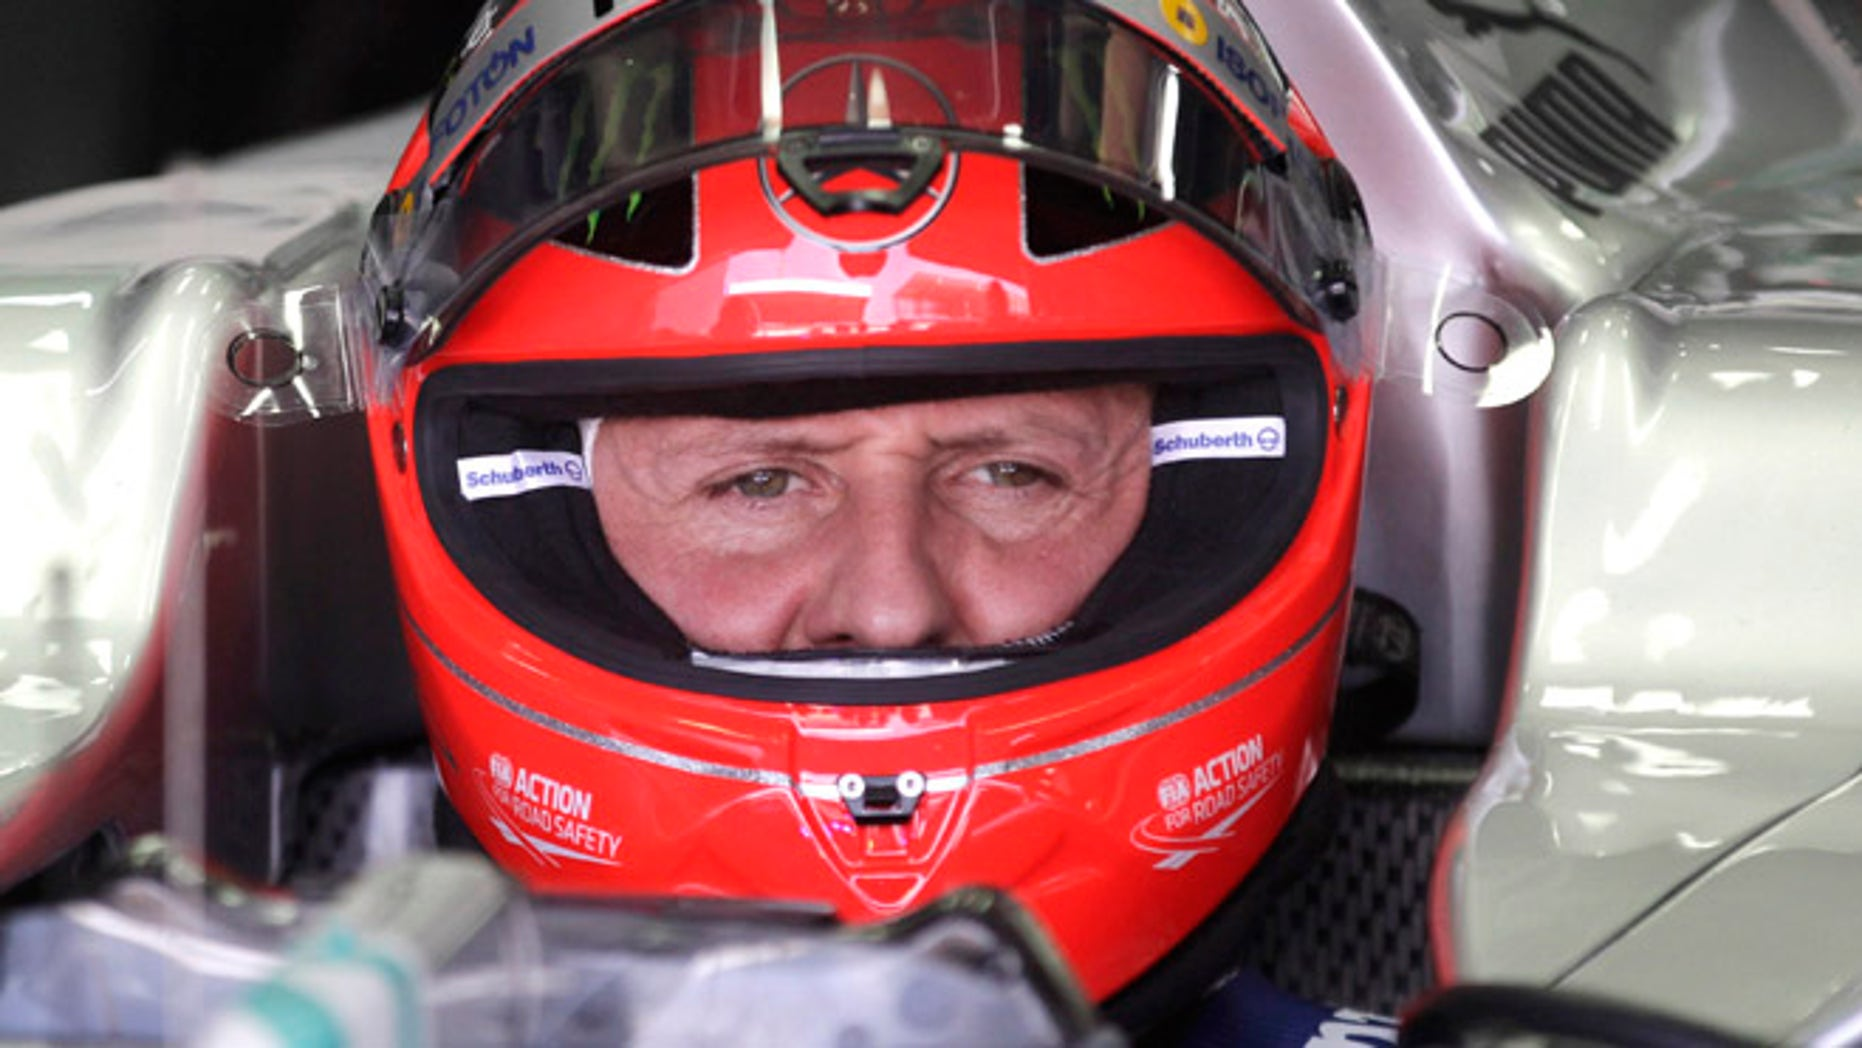 FILE - In this Nov. 23, 2012 file photo, Grand Prix driver Michael Schumacher, of Germany, sits in his car during a free practice at the Interlagos race track in Sao Paulo, Brazil. (AP Photo/Victor Caivano, File)